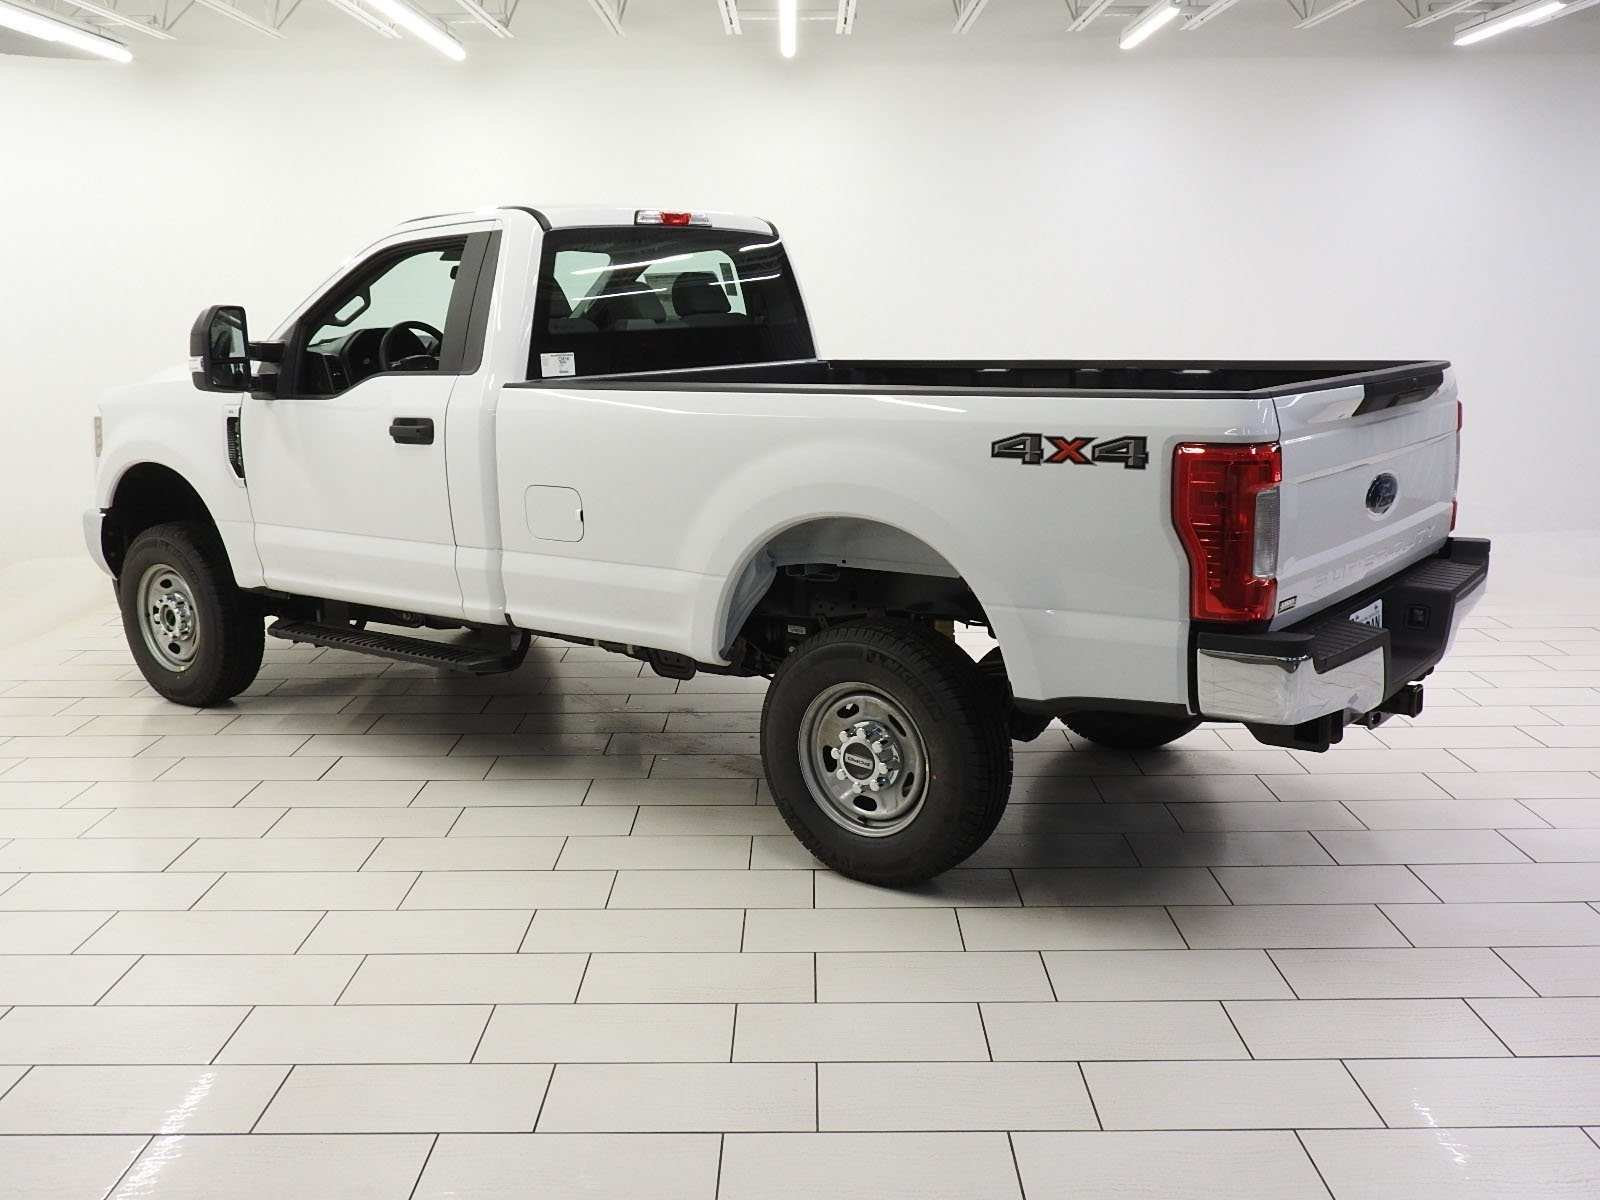 32 New Best 2019 Ford F250 Release Date Review Specs And Release Date Reviews with Best 2019 Ford F250 Release Date Review Specs And Release Date